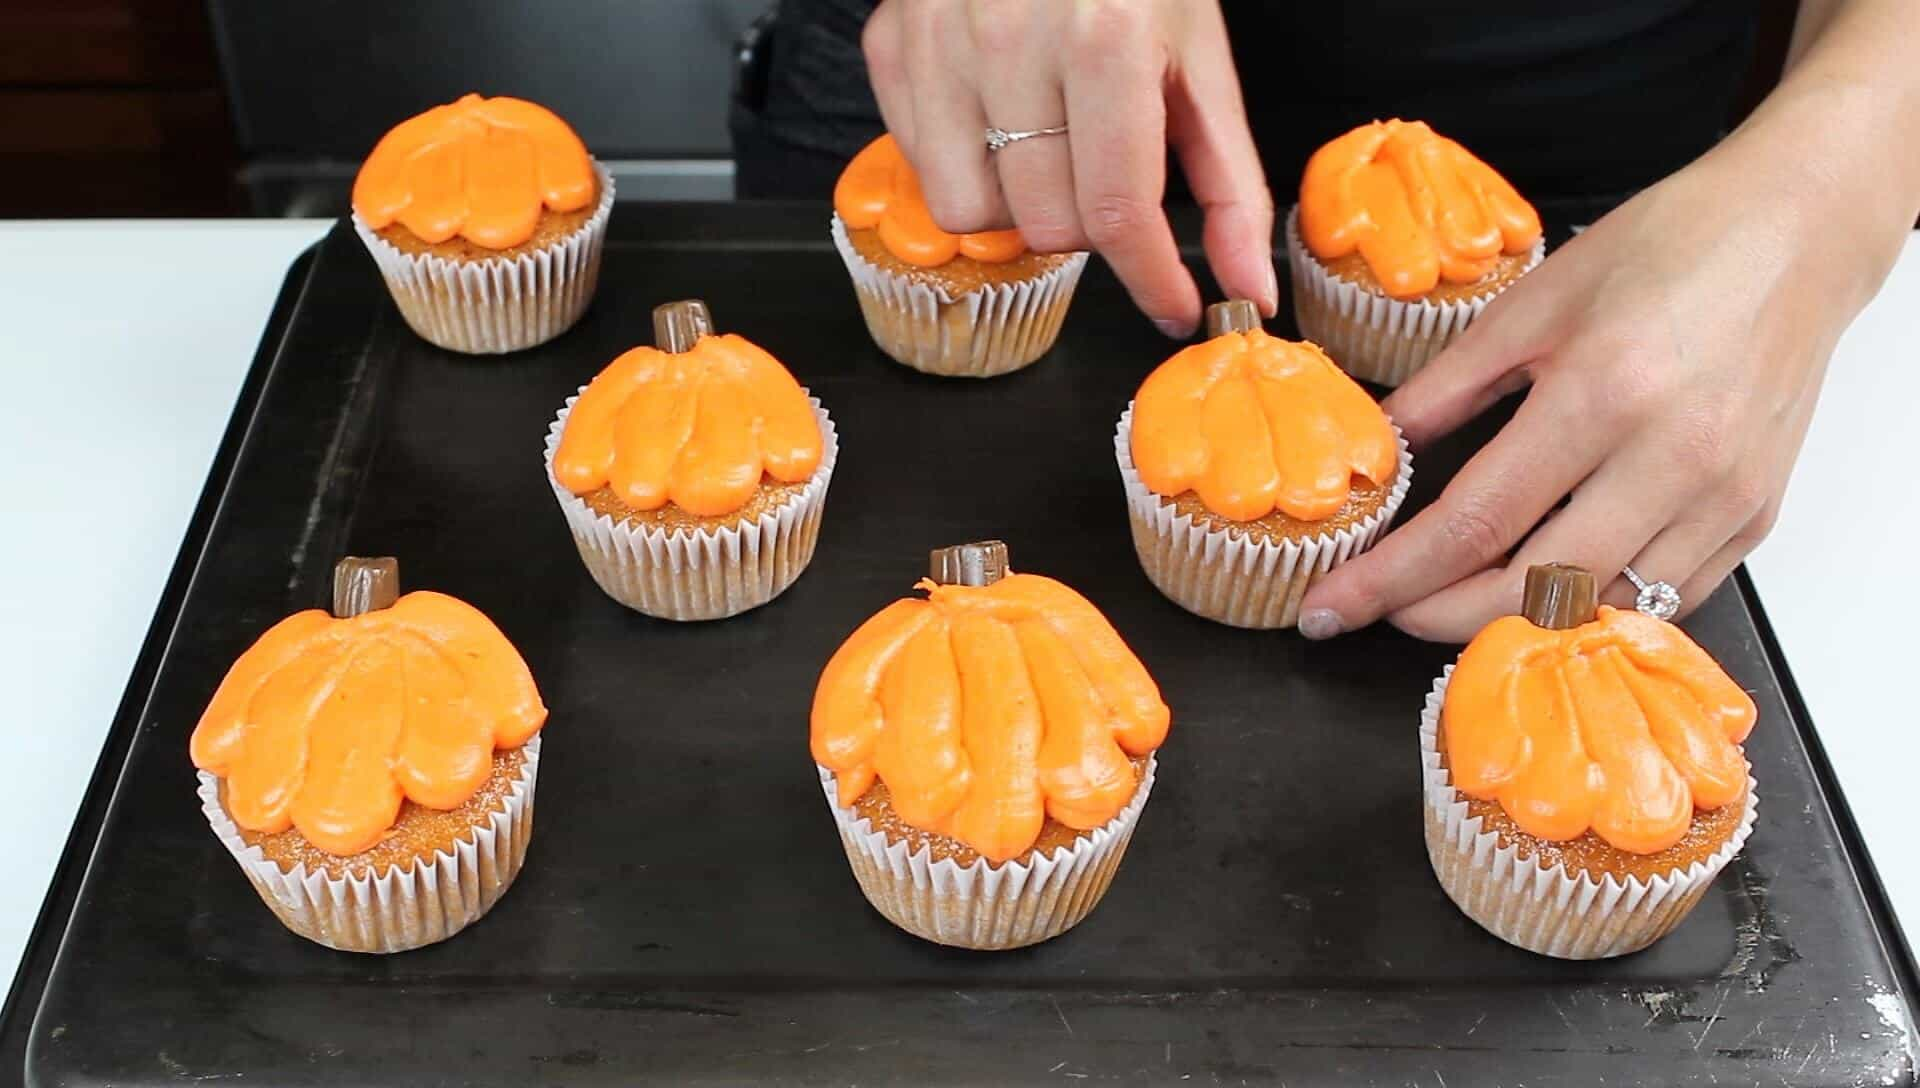 Image of adding tootsie roll stems to the pumpkin cupcakes